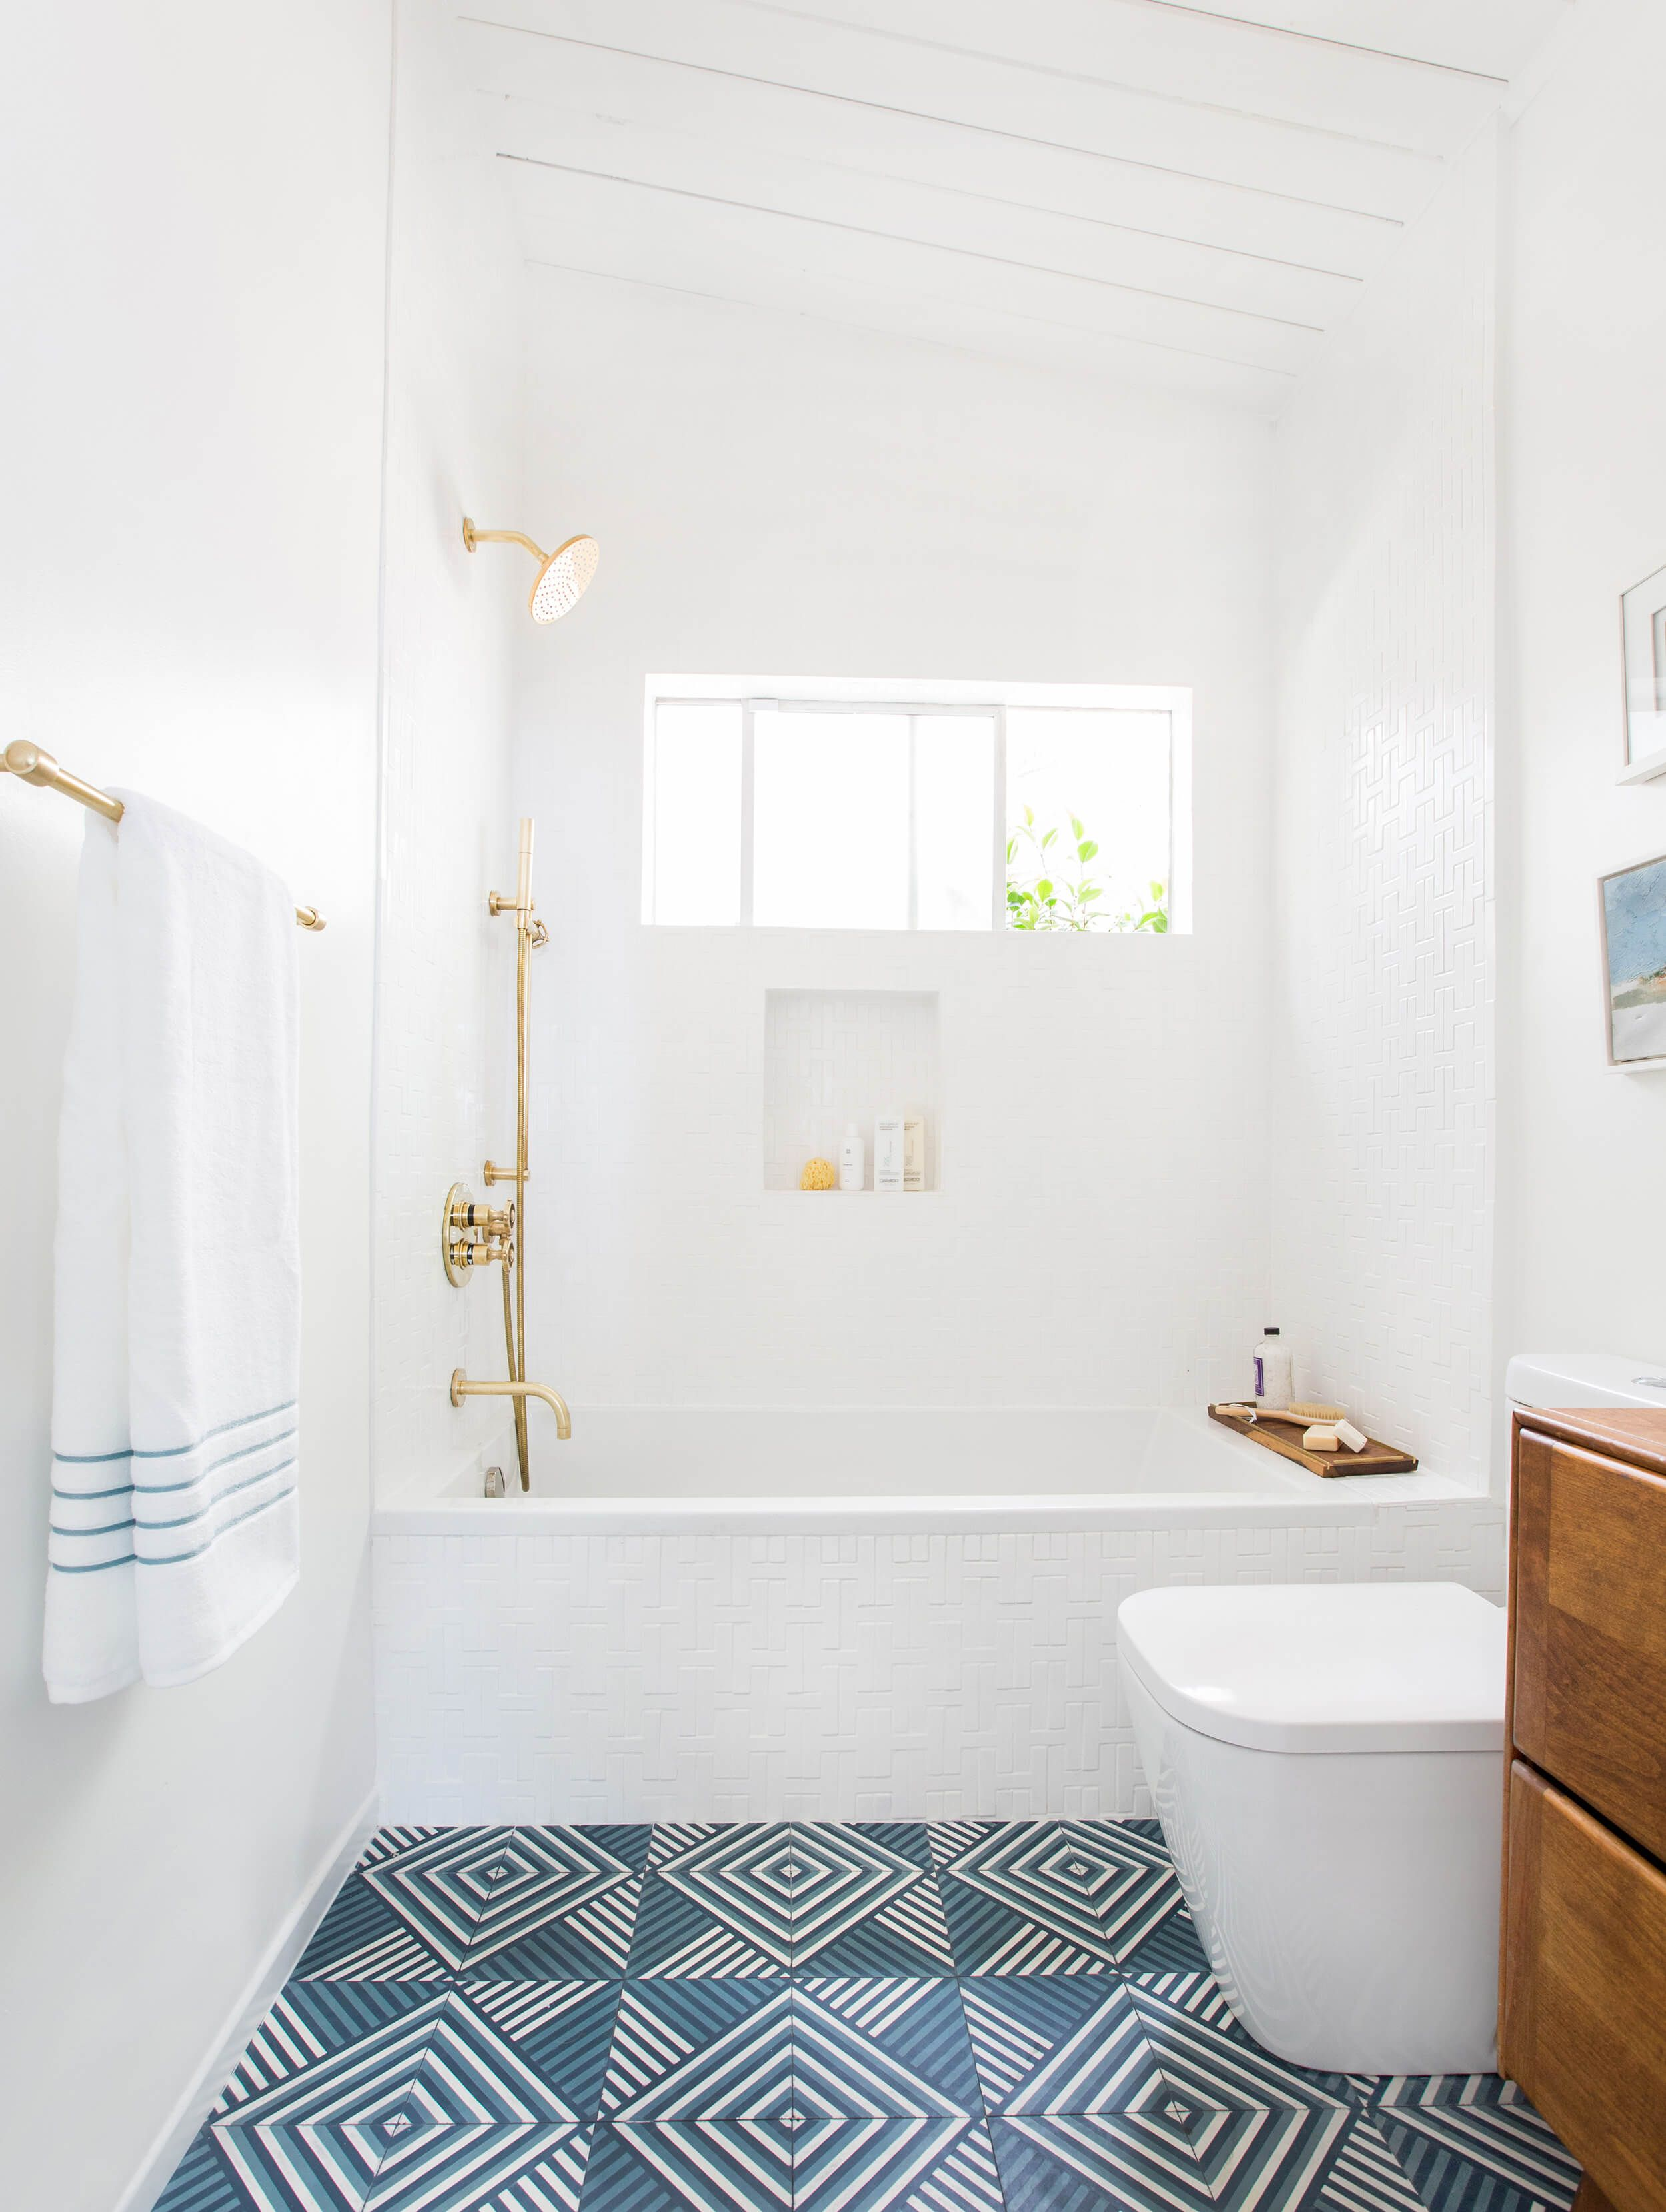 How splurge-worthy wallpaper or tile can make a room .... - Emily ...